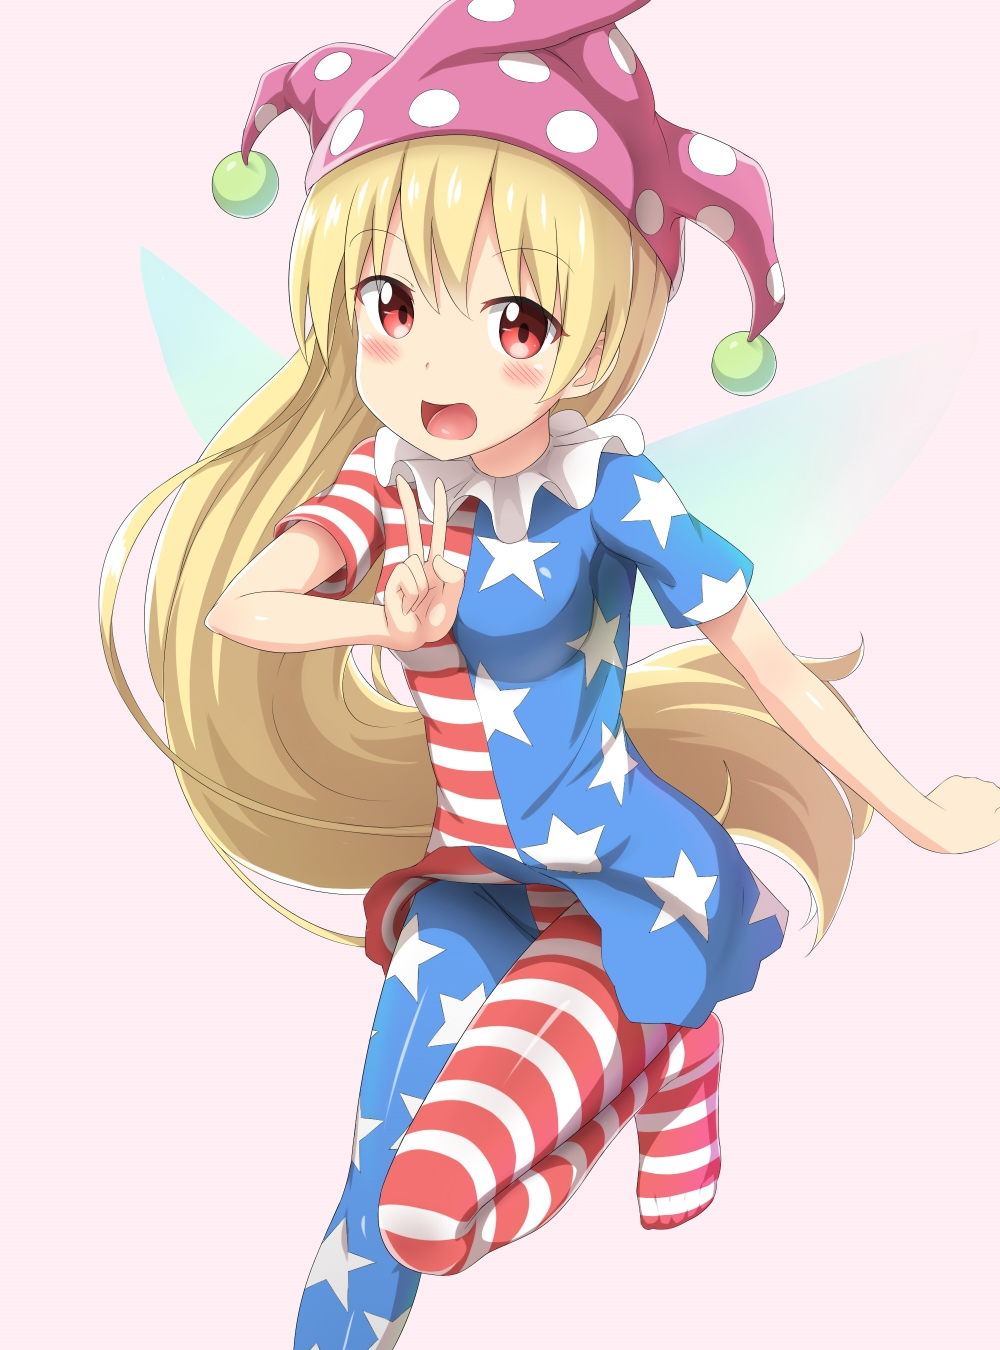 Pin by Phoenixwing on Clownpiece Touhou Project (東方